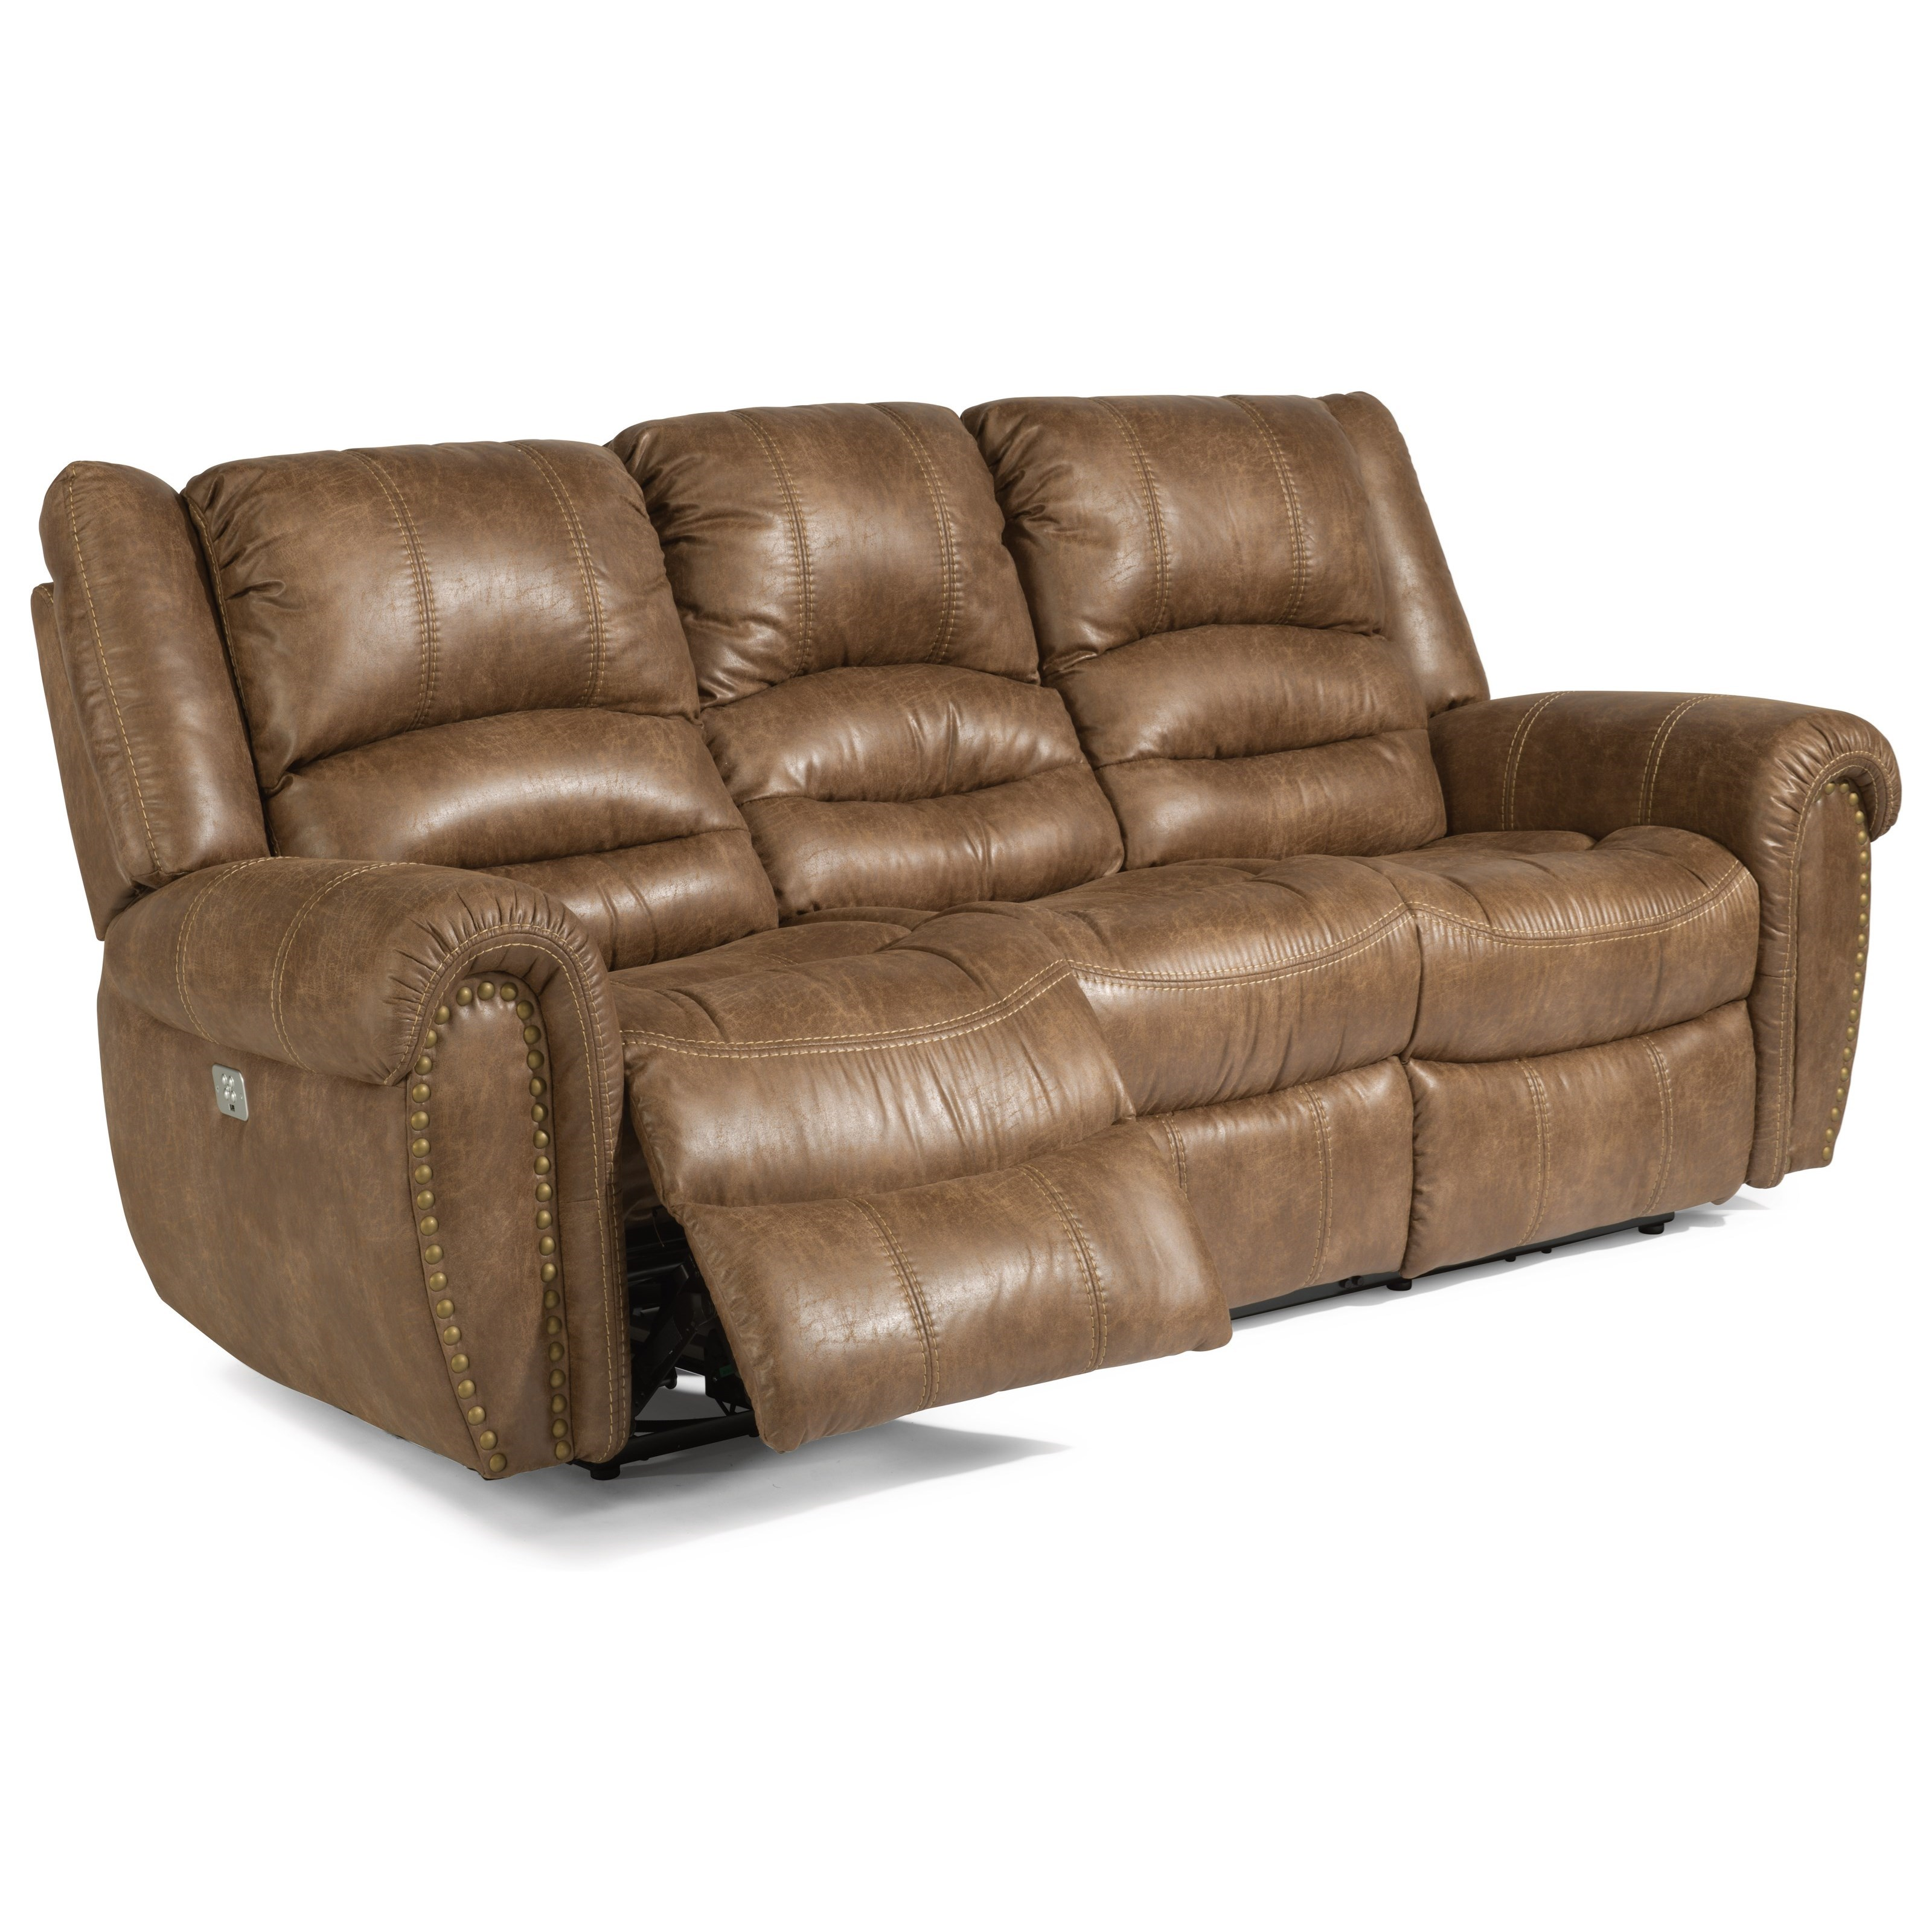 Flexsteel Gordon Transitional Power Reclining Sofa